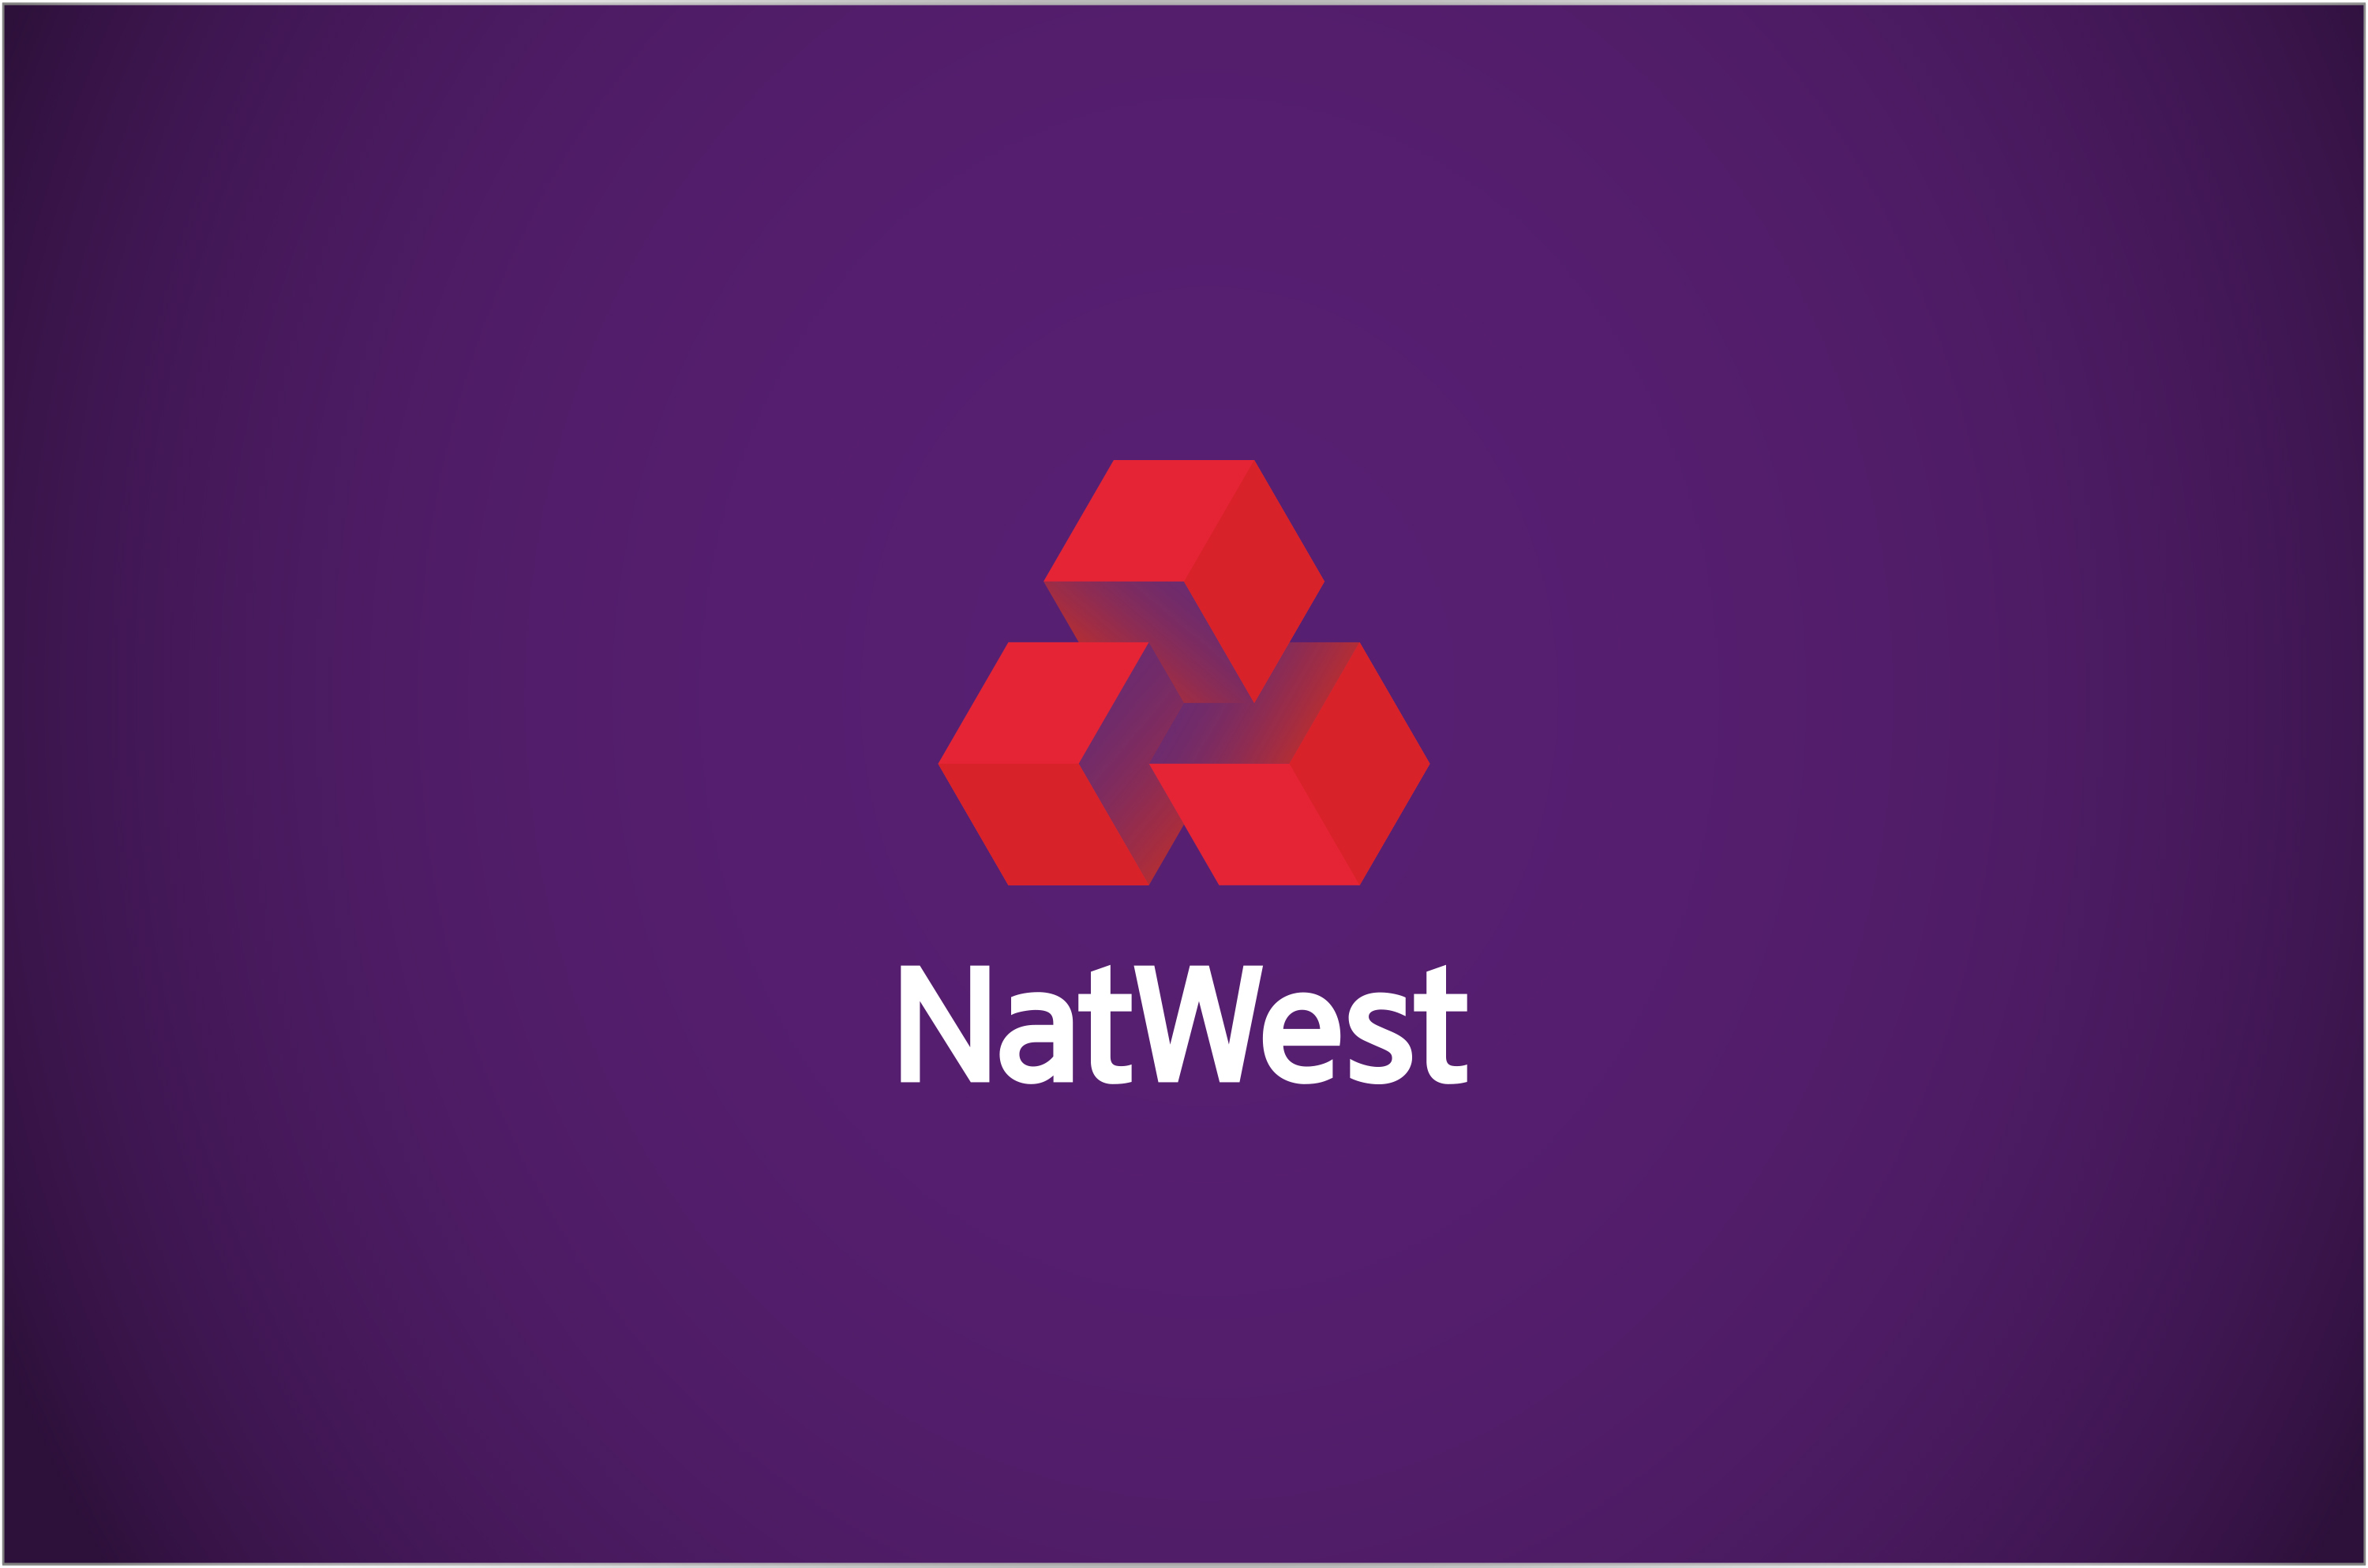 NatWest Opens Doors to UK's Entrepreneur Community